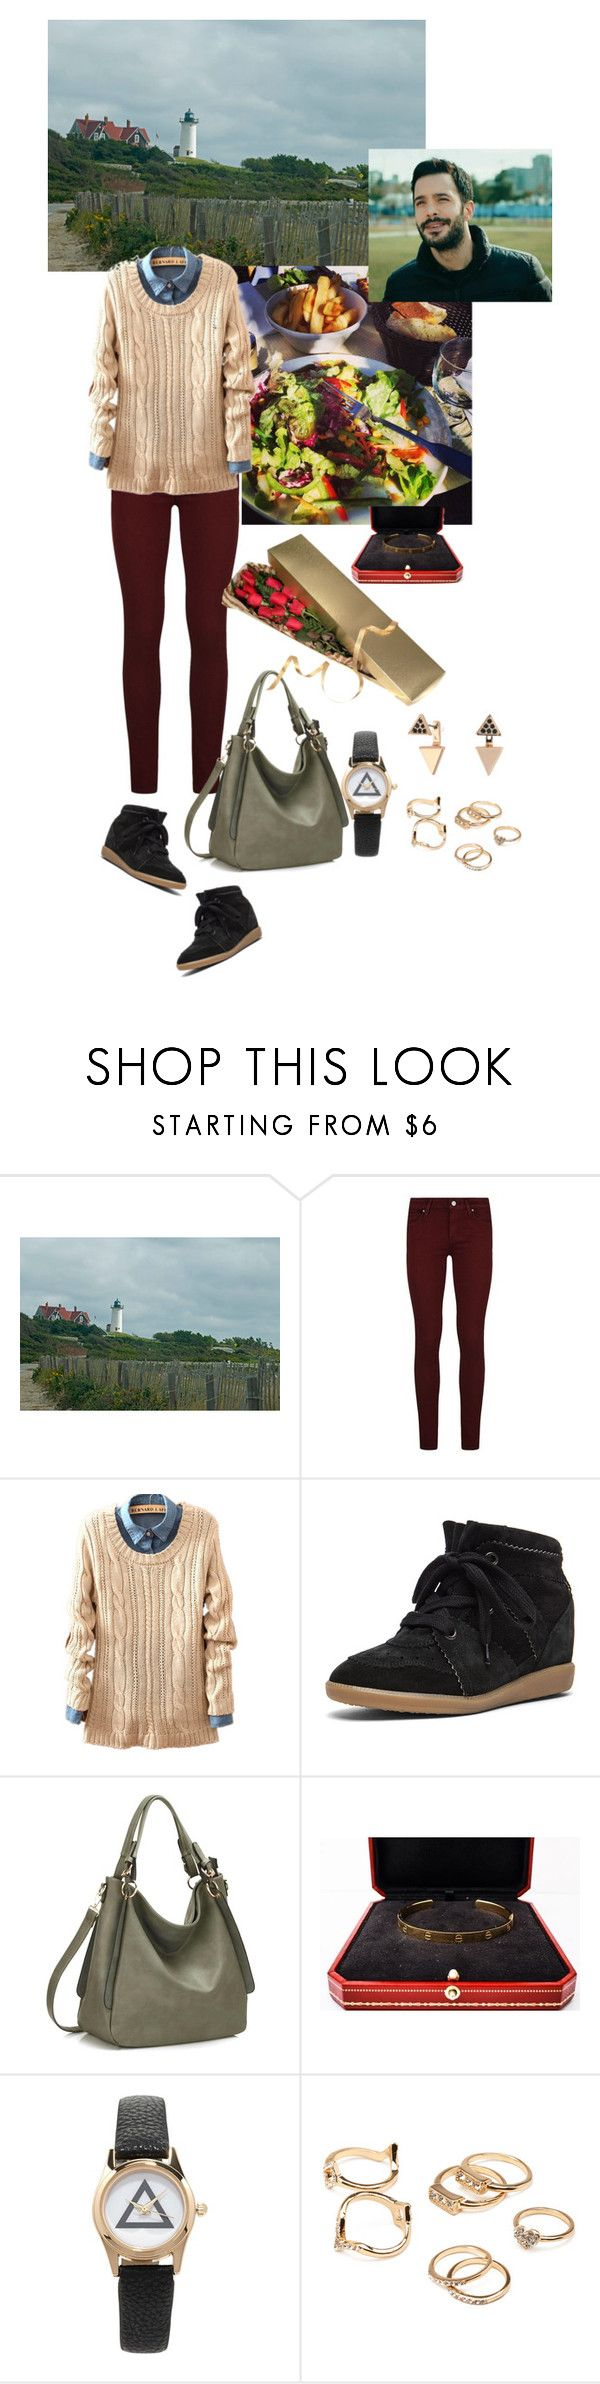 """""""Date 3 (March 20, 2014)"""" by medicicapetiens ❤ liked on Polyvore featuring Paige Denim, Isabel Marant, Cartier, GET LOST, Forever 21 and Rebecca Minkoff"""